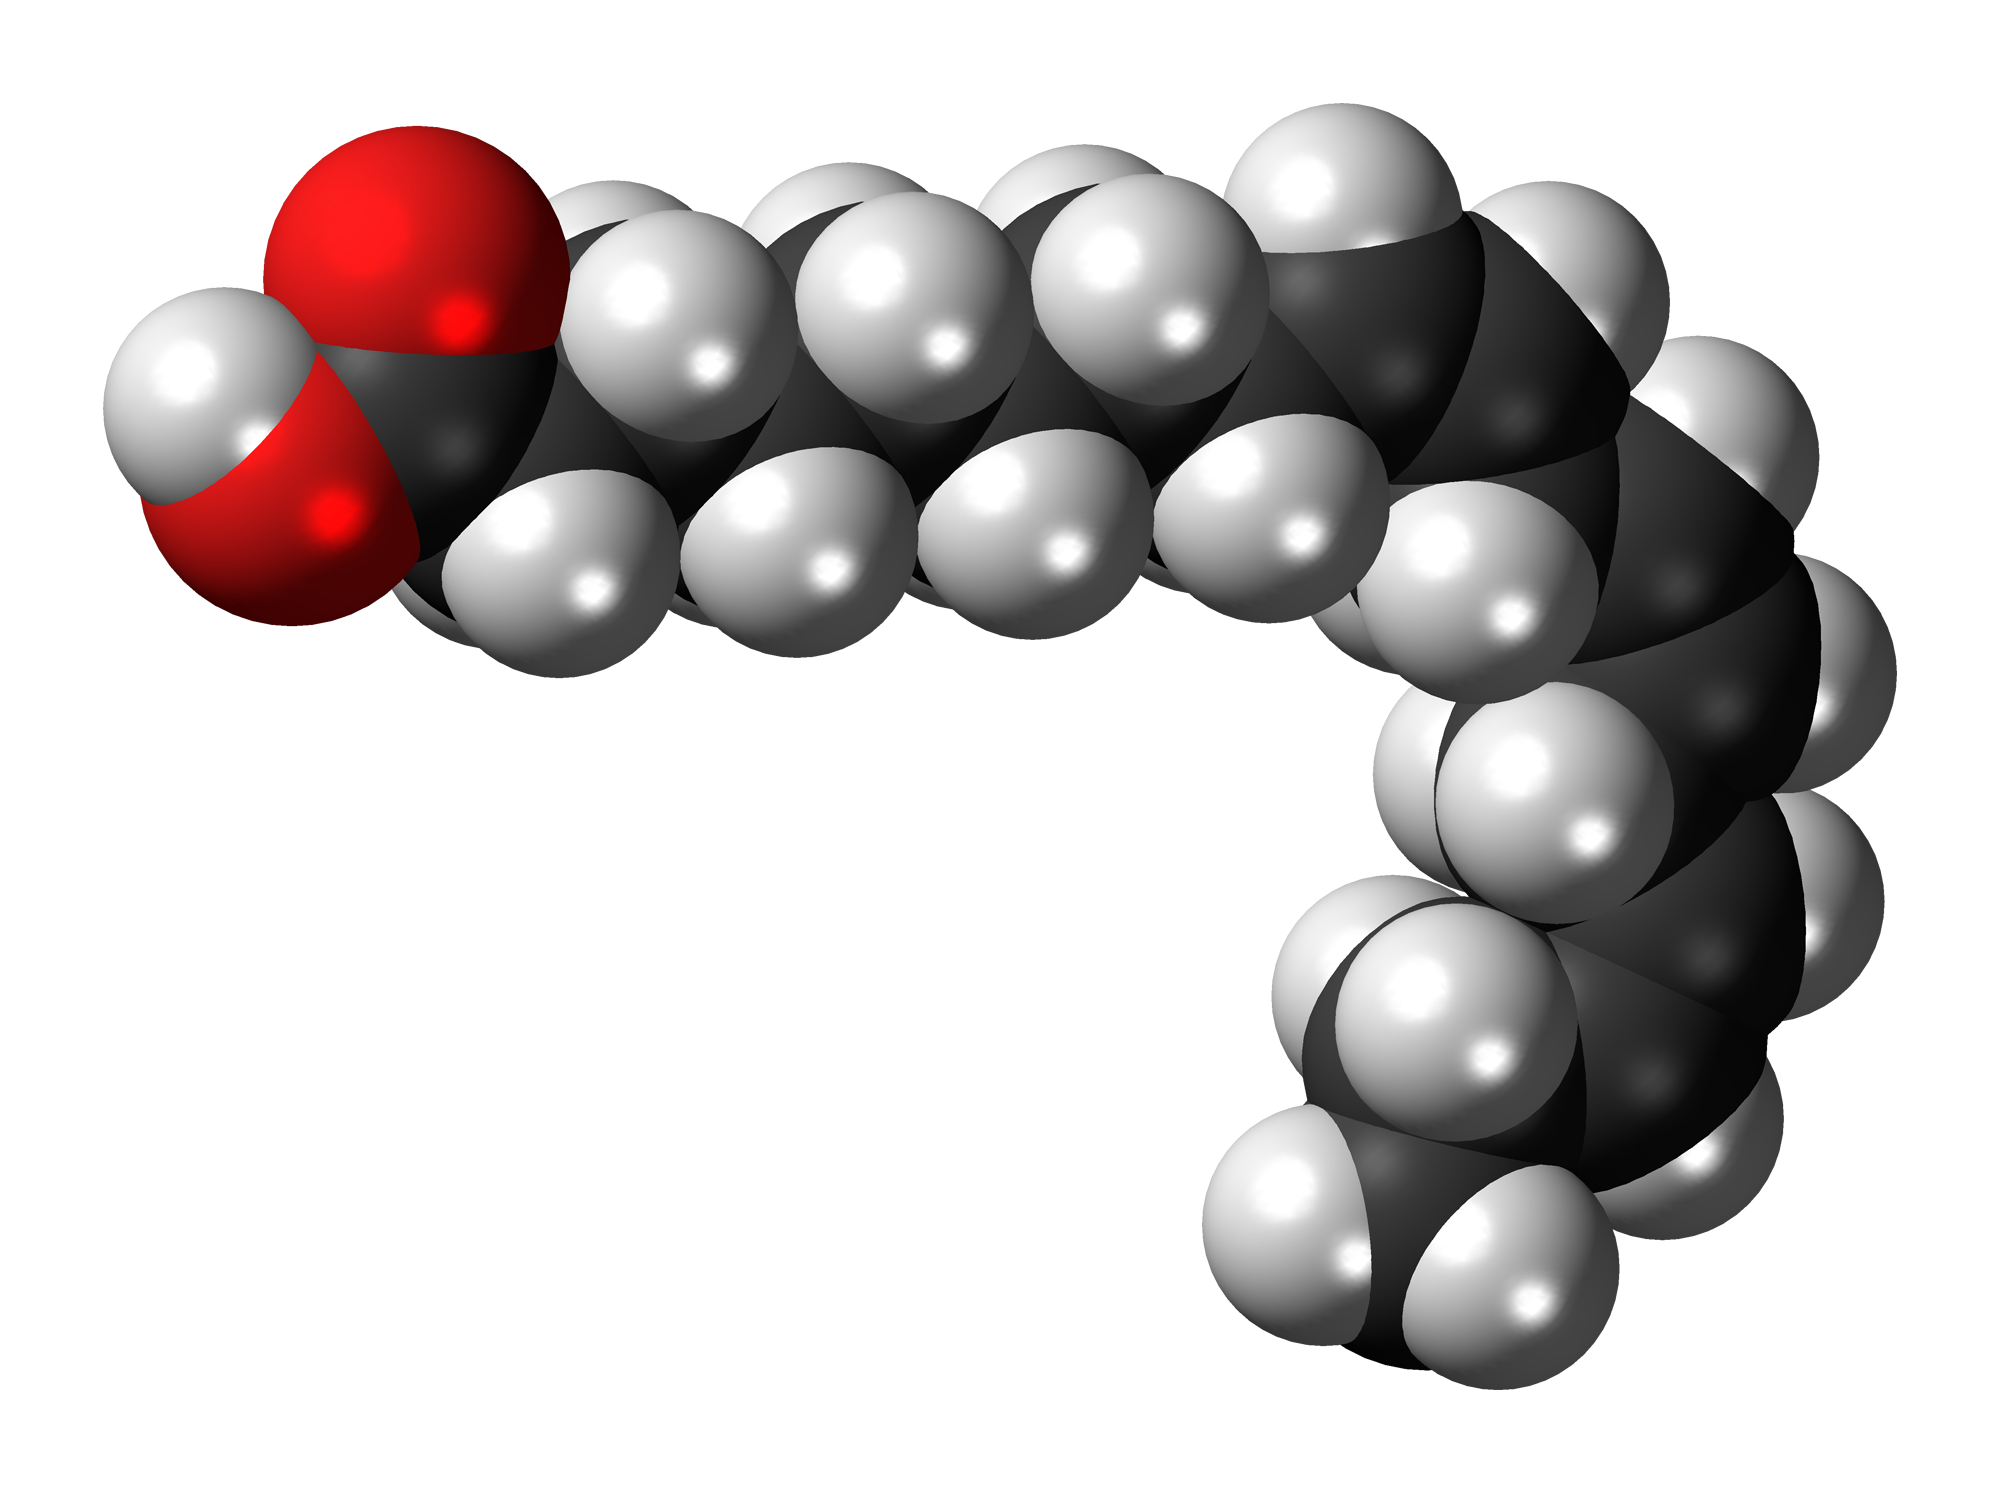 File:Alpha-Linolenic-acid-3D-spacefill.png - Wikimedia Commons